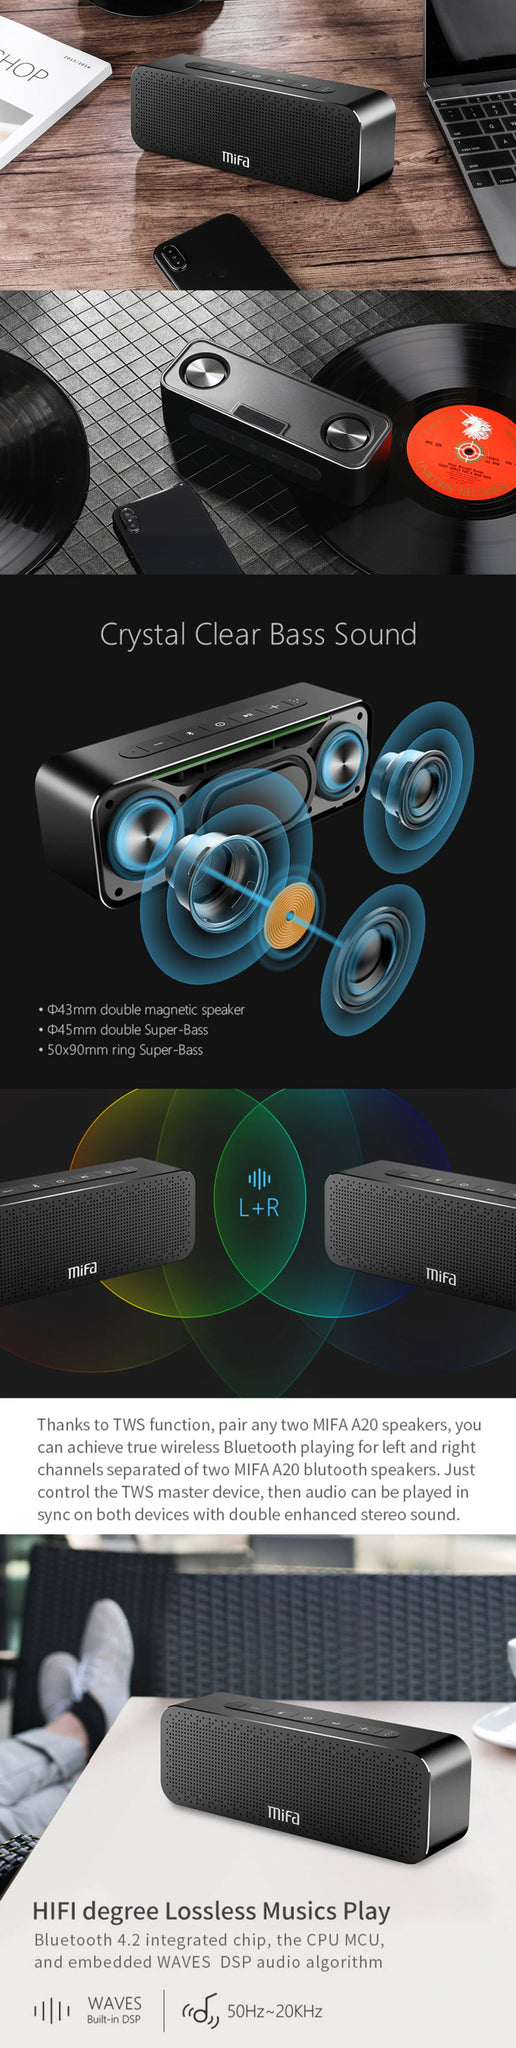 MIFA Portable Bluetooth Speaker Boombox Crystal Clear Bass Sound and Other Features